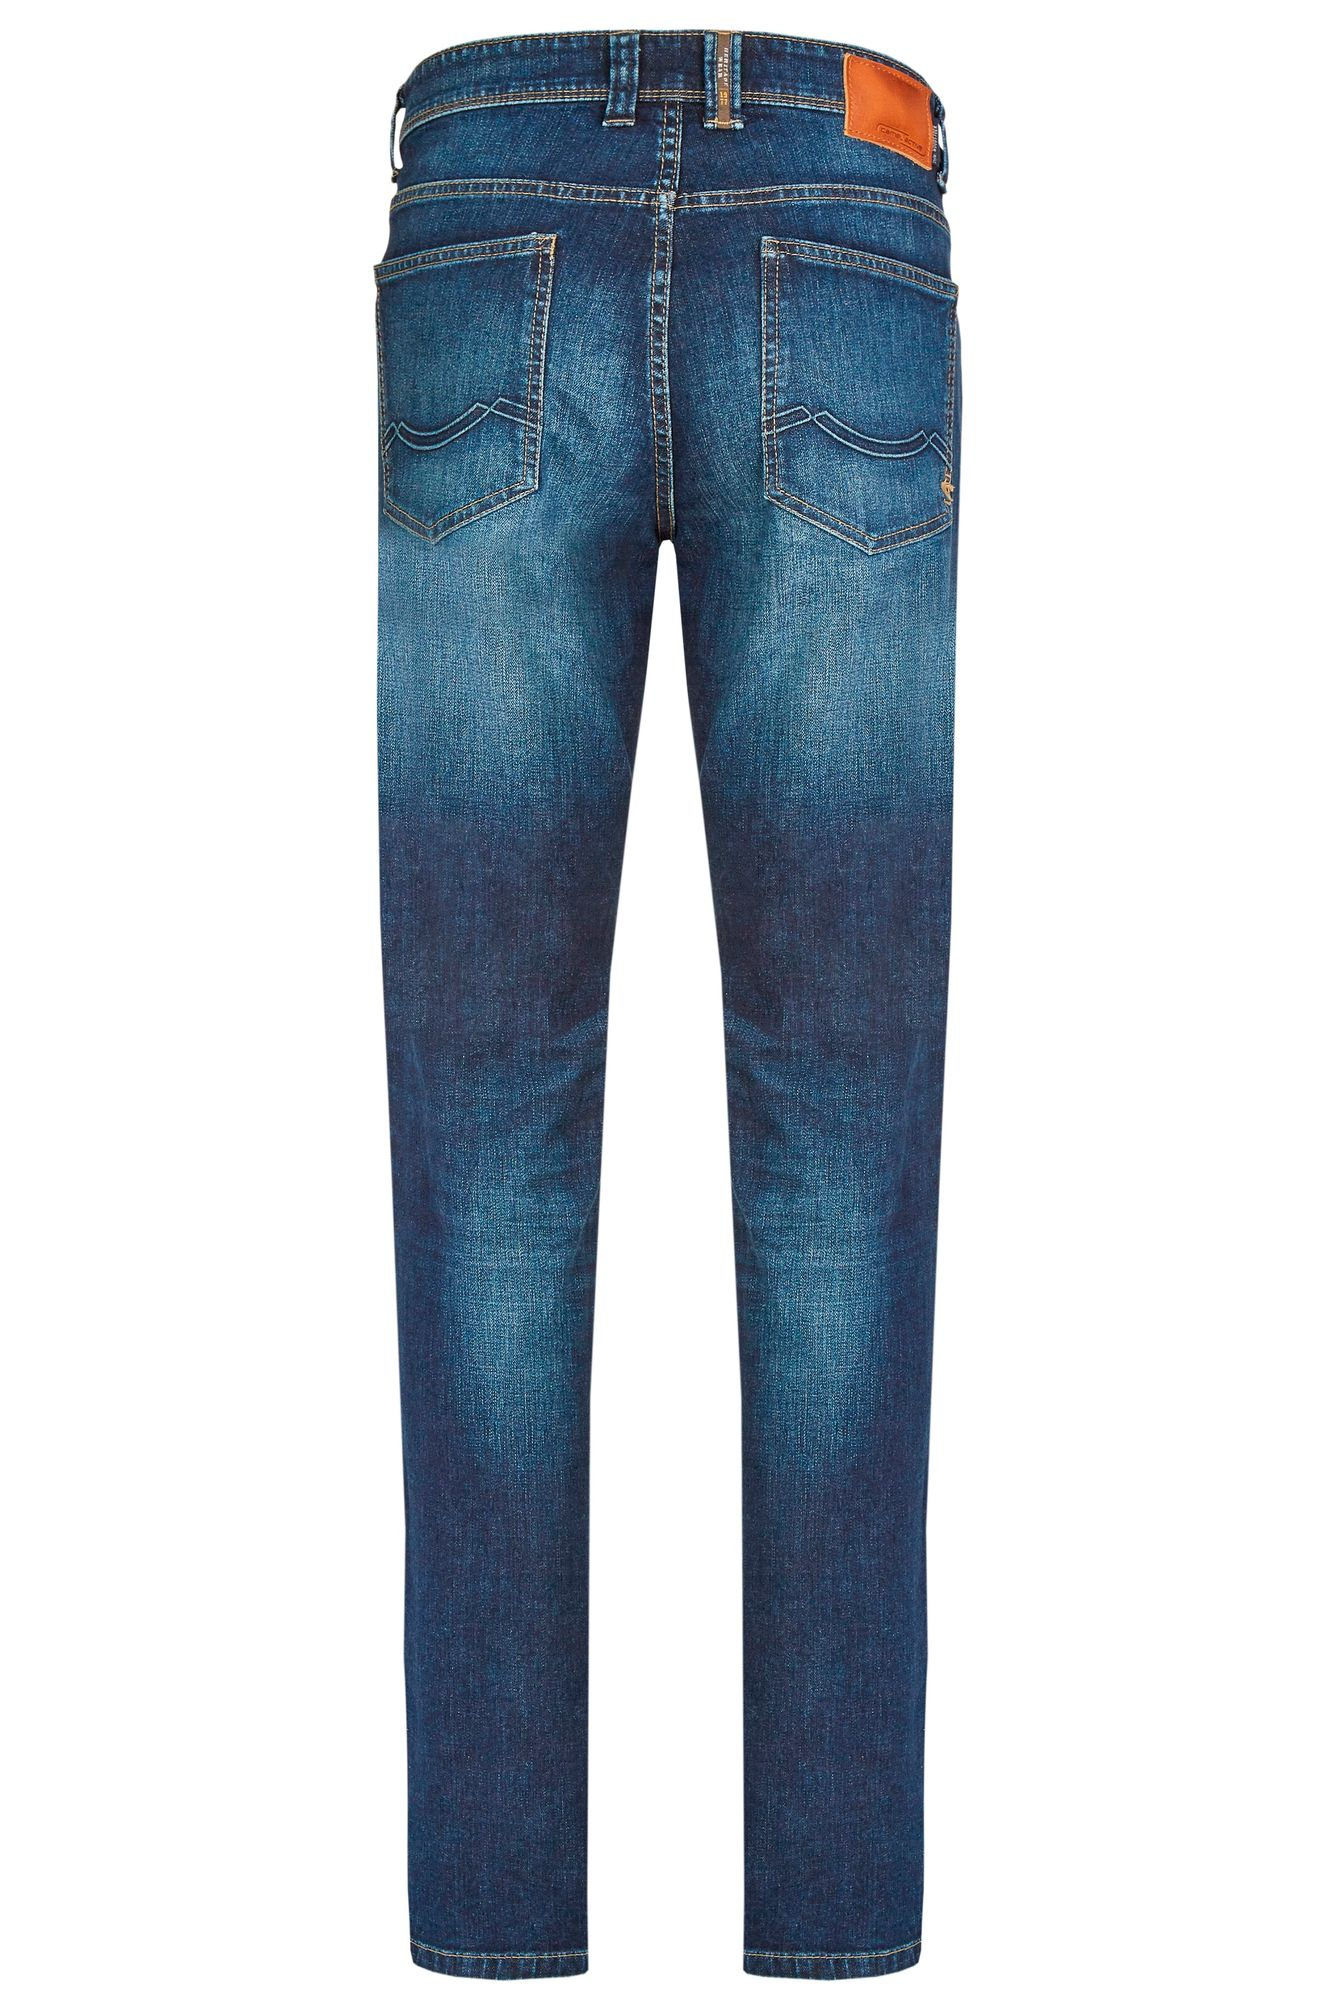 Camel Active Herren Jeans 5 Pocket Woodstock (488255 9829)